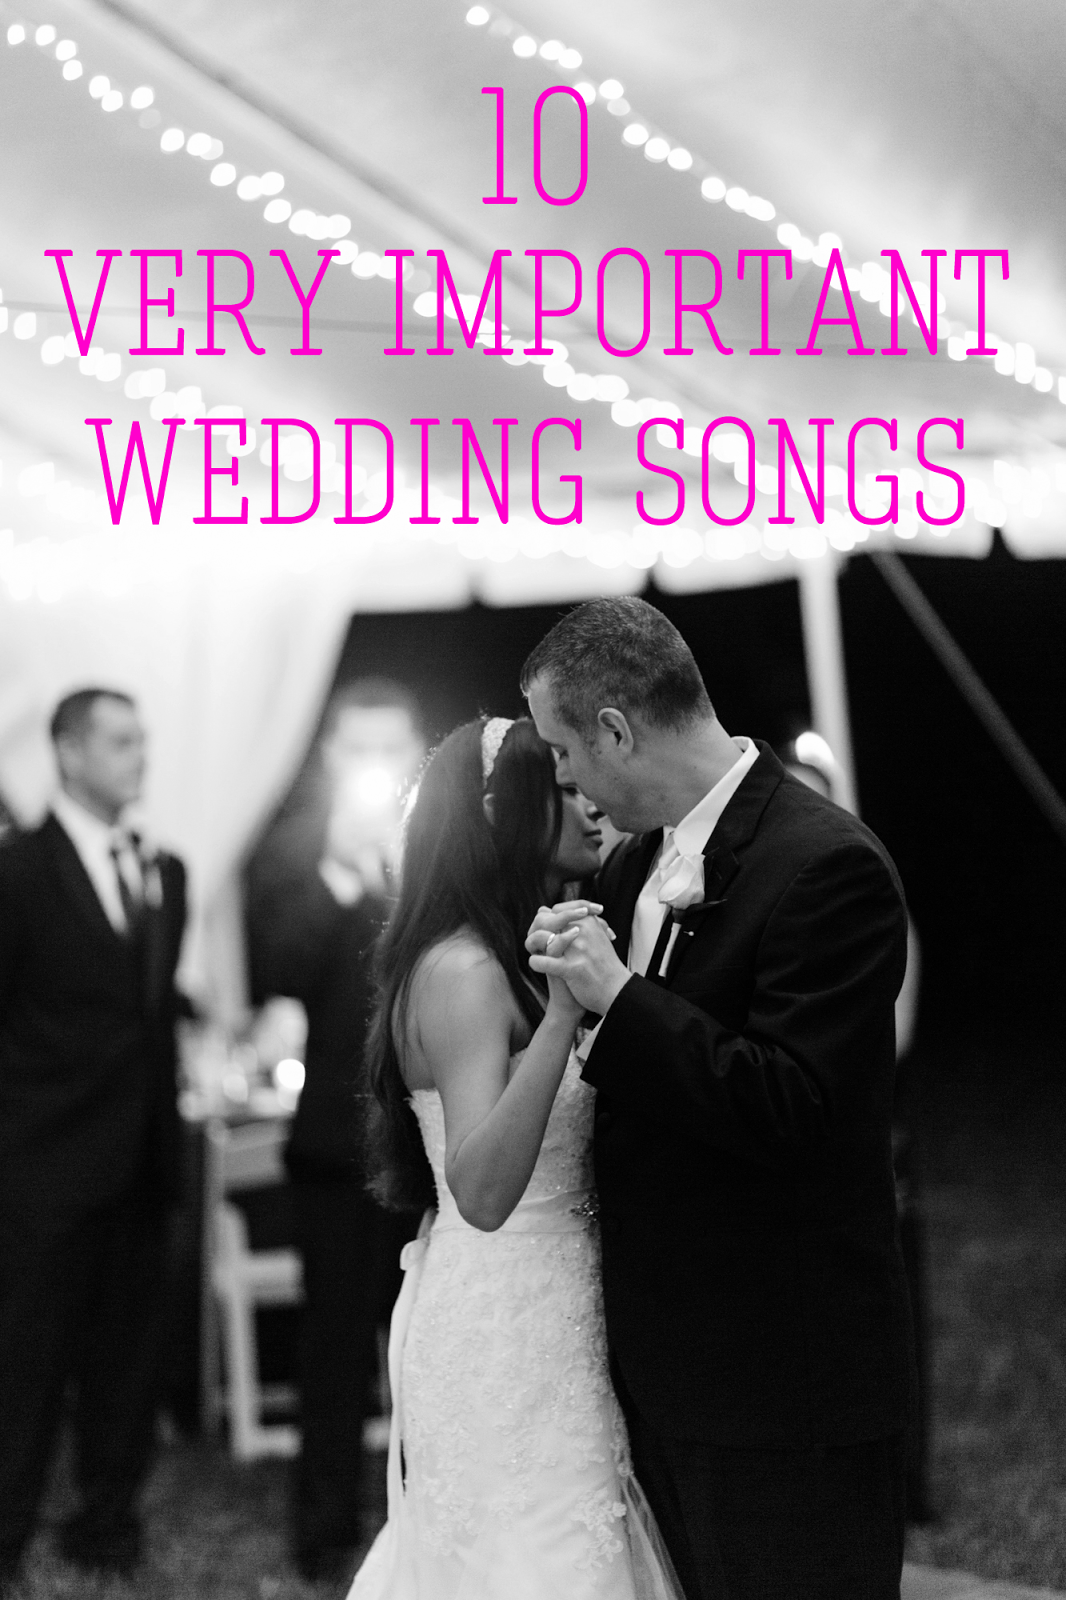 The 10 Important Wedding Songs